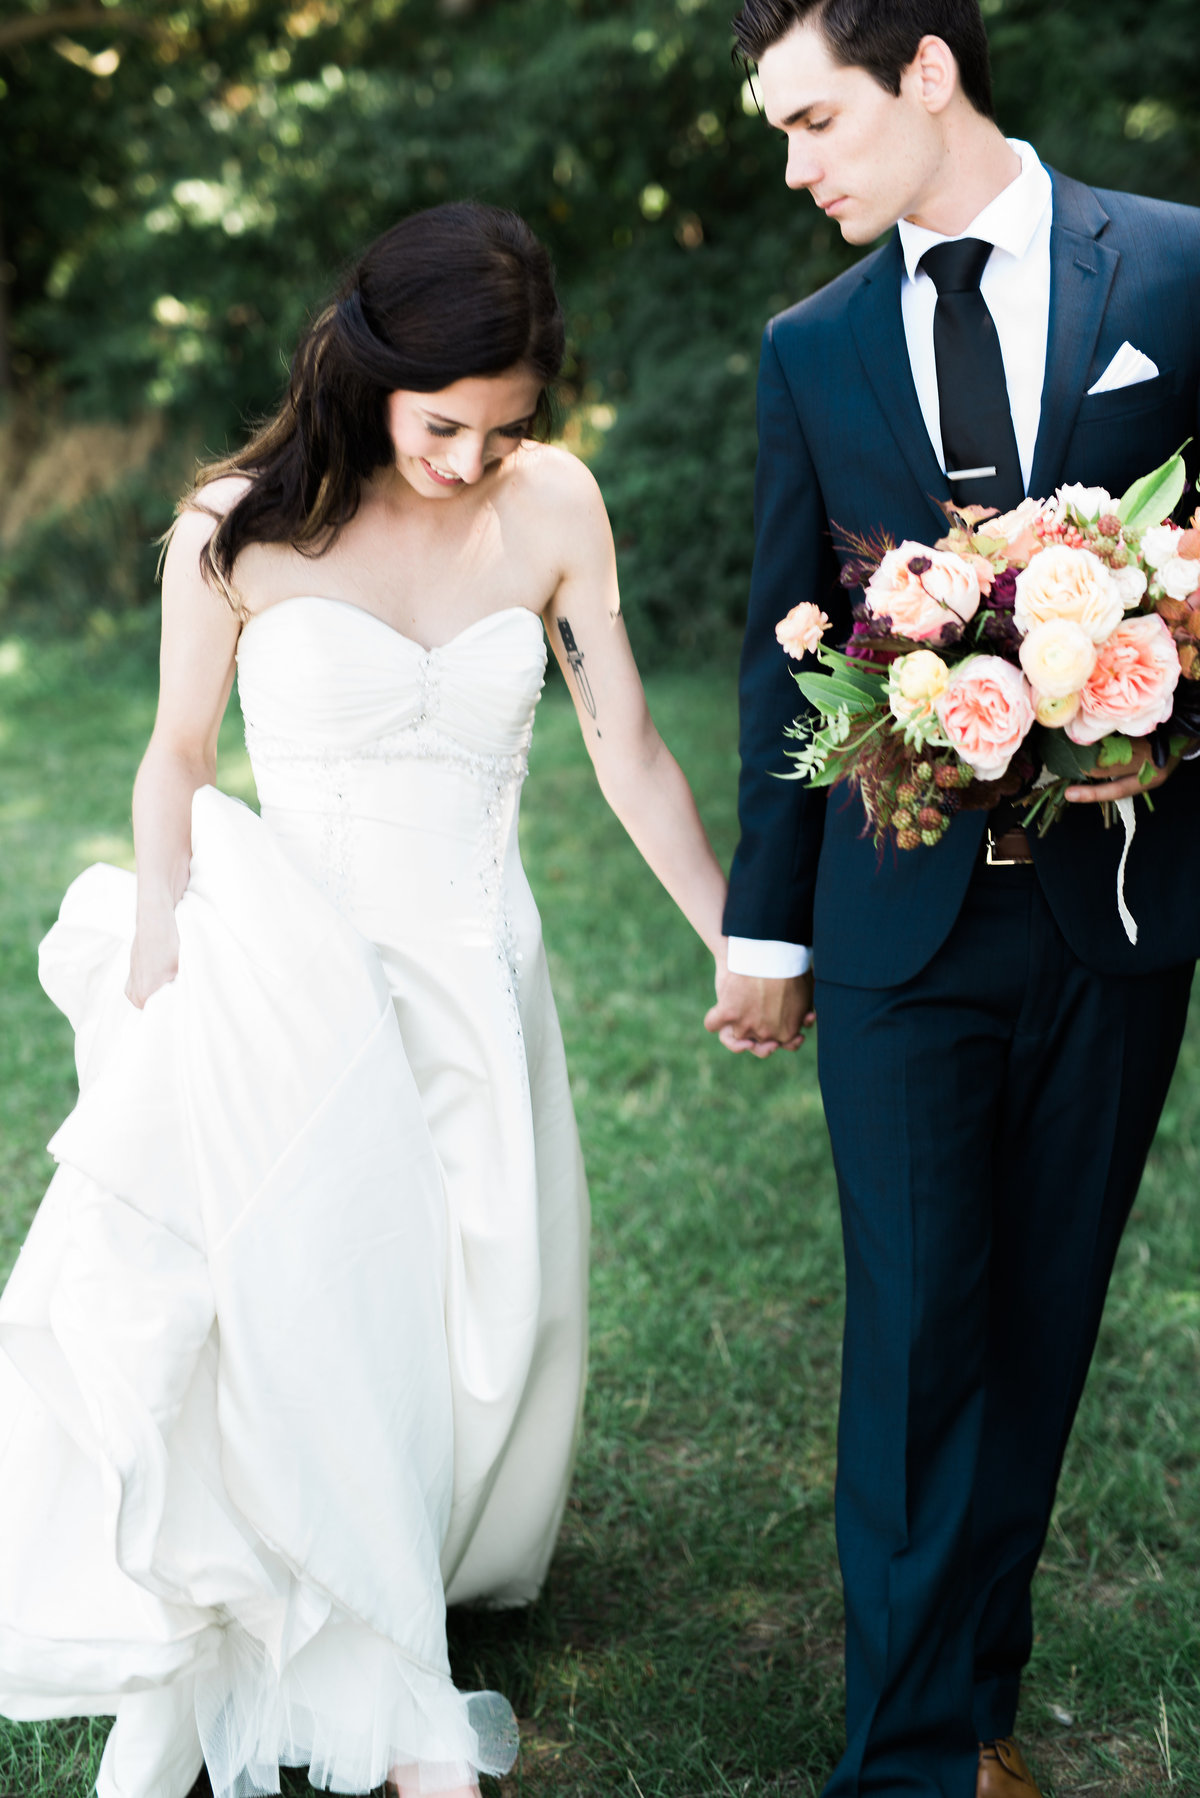 Lush Florals and Destiny Dawn Photography are Toronto Wedding Photographers and Florists